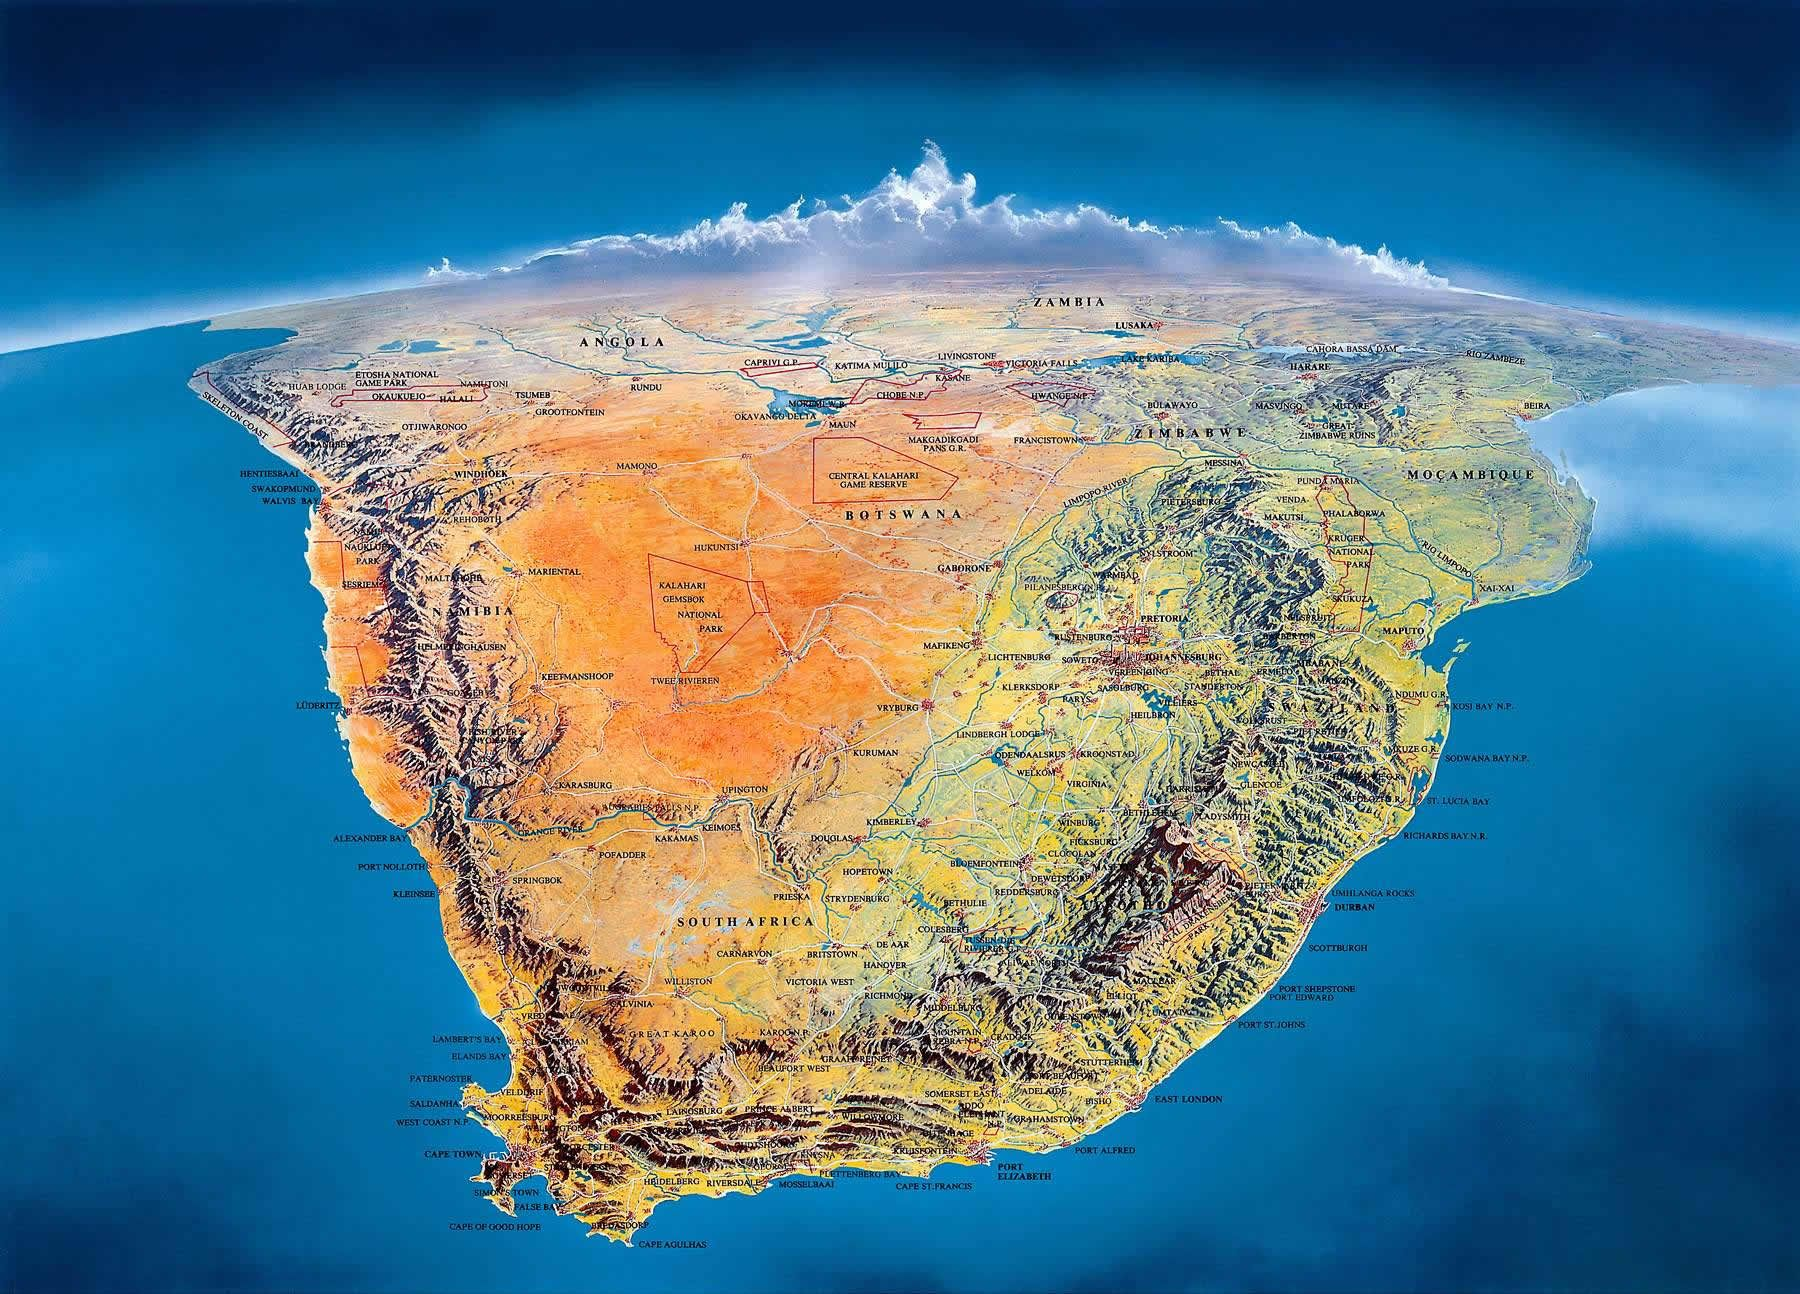 Relief Map Of Southern Africa.South Africa Relief Map South Africa Map South Africa